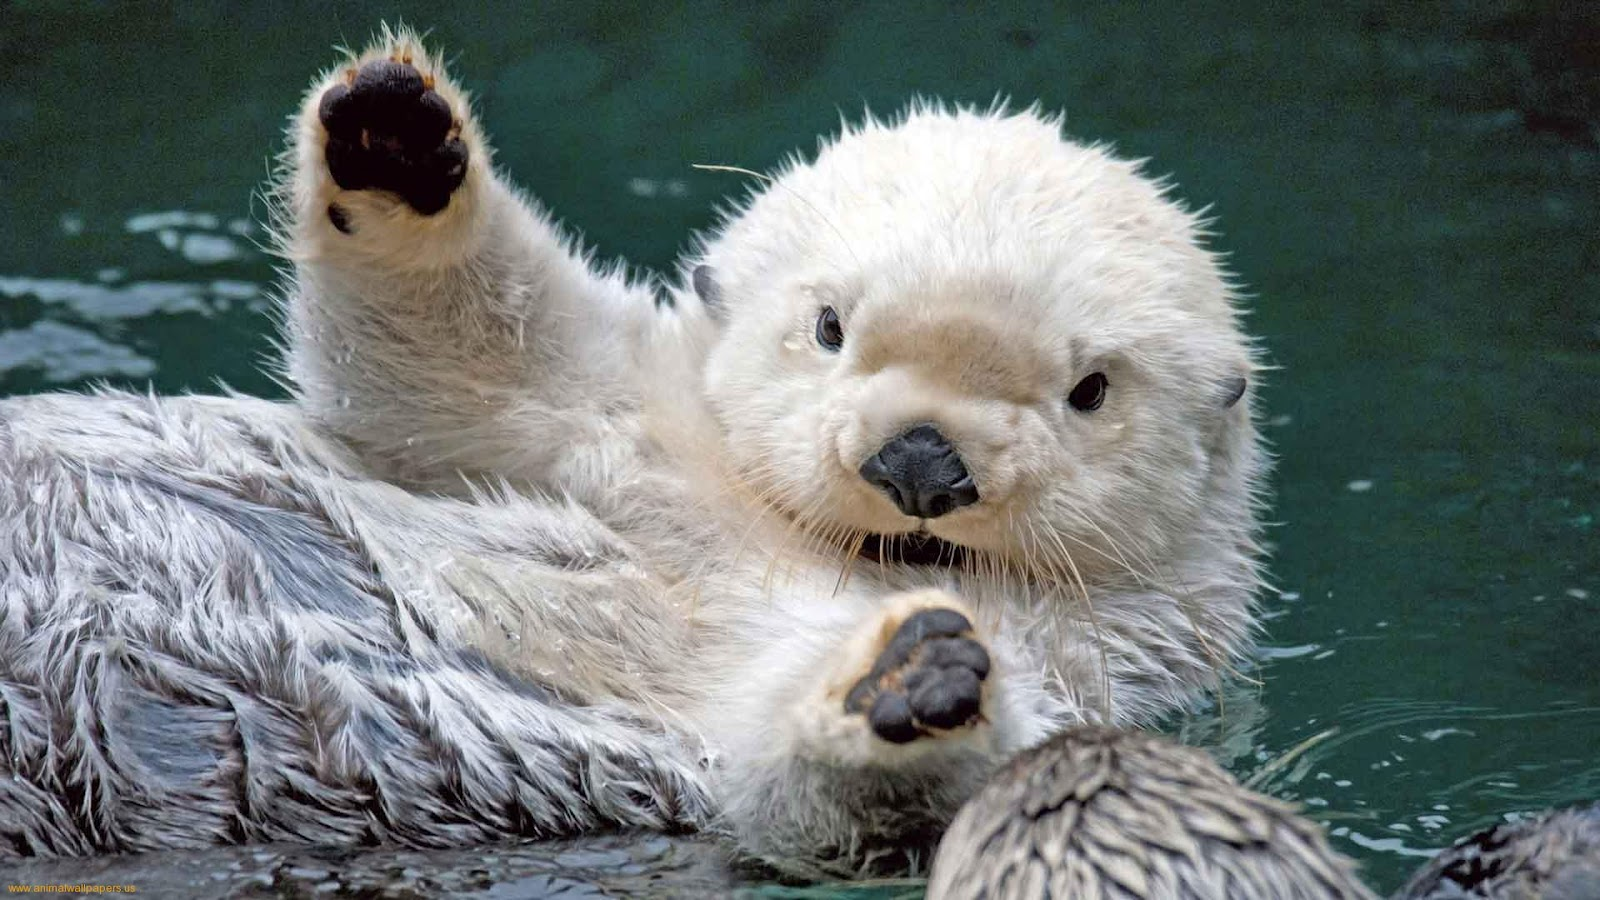 49+] Baby Animal Wallpaper Pictures on